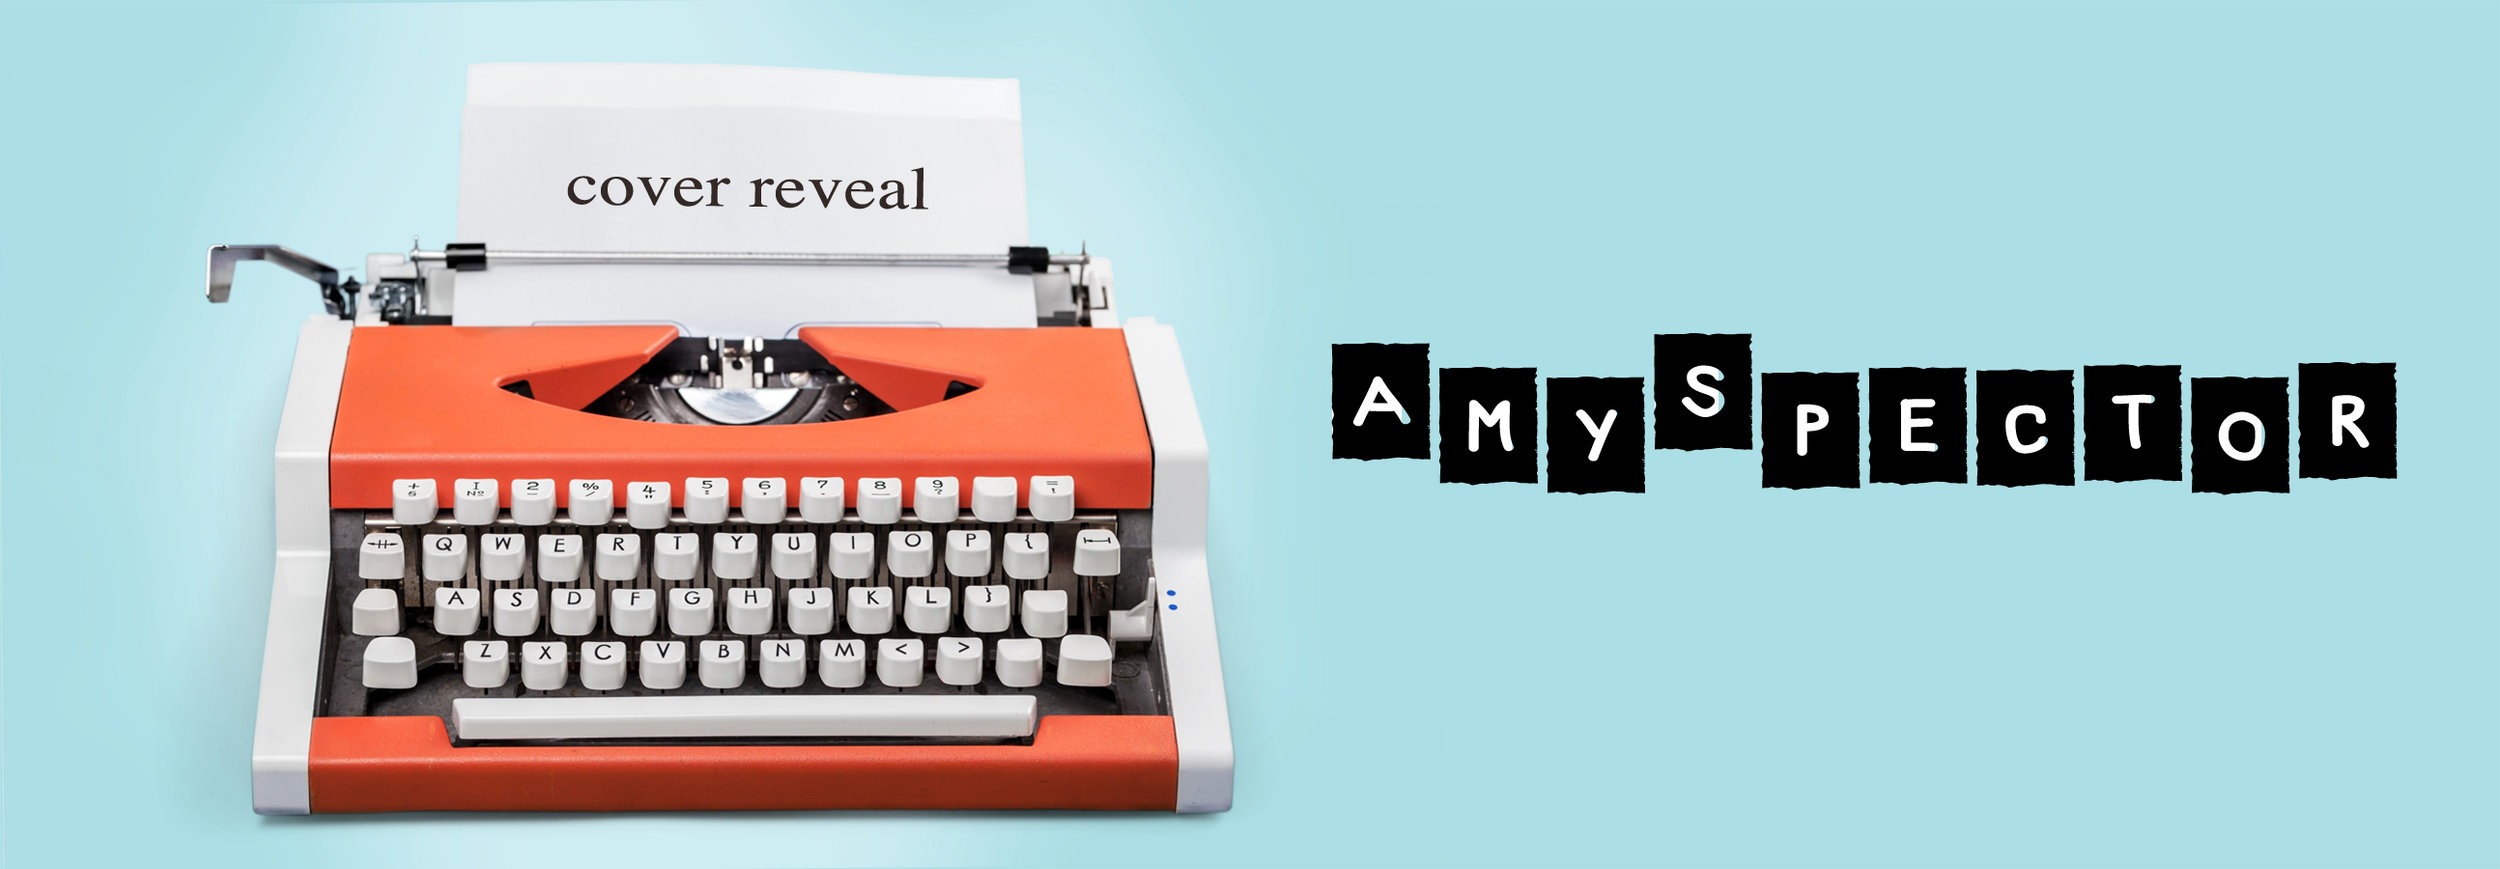 Typewriter Cover Reveal Banner.jpg